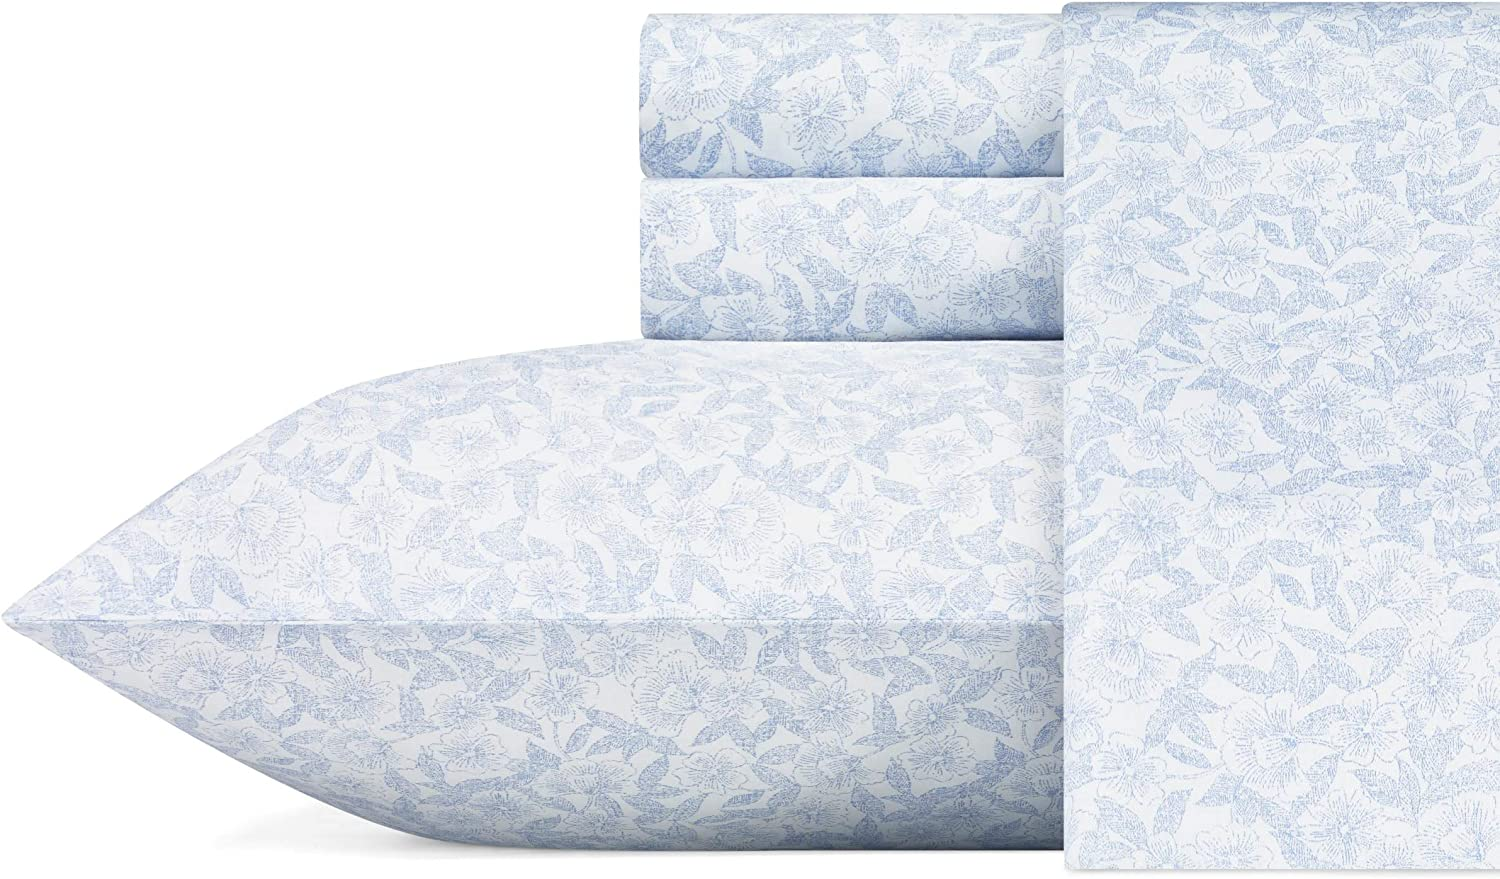 Laura Ashley Home| Sateen Collection| 100% Cotton Sateen Weave Bedding Set, Cozy, Silky-Smooth and Softer After Each Wash, King, Blossoming Blue